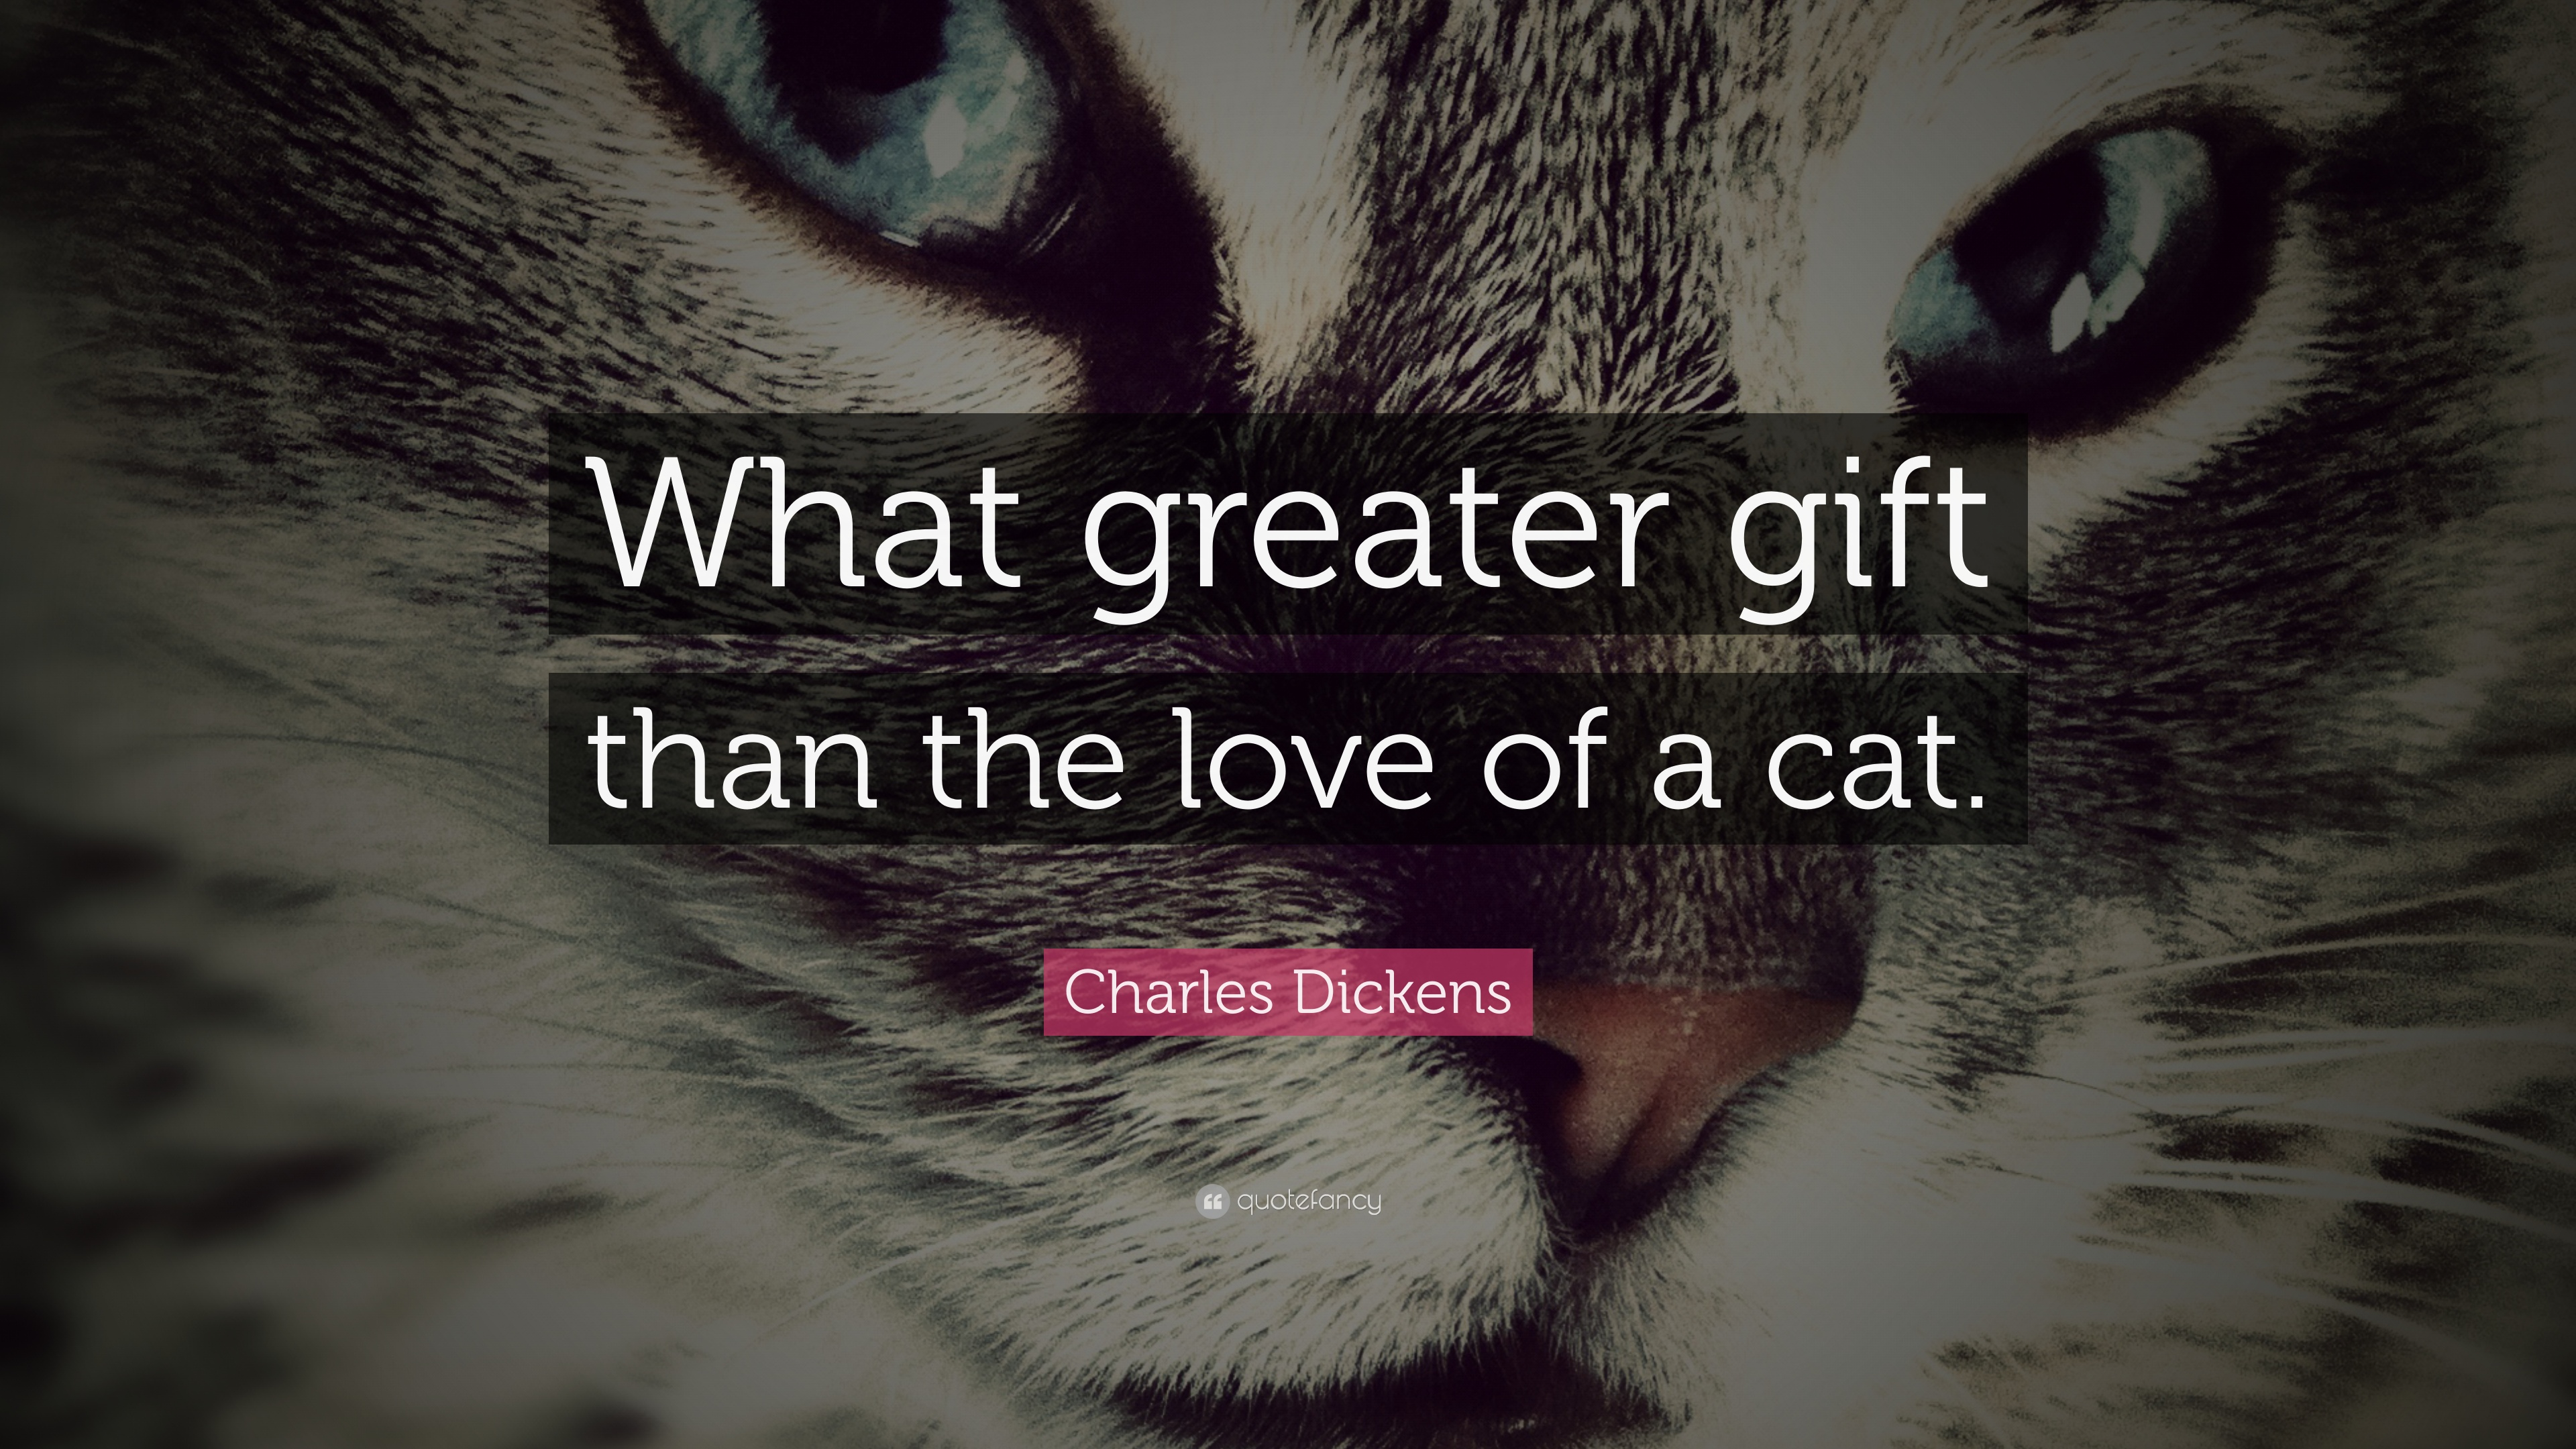 """Charles Dickens Quote """"What greater t than the love of a cat """""""